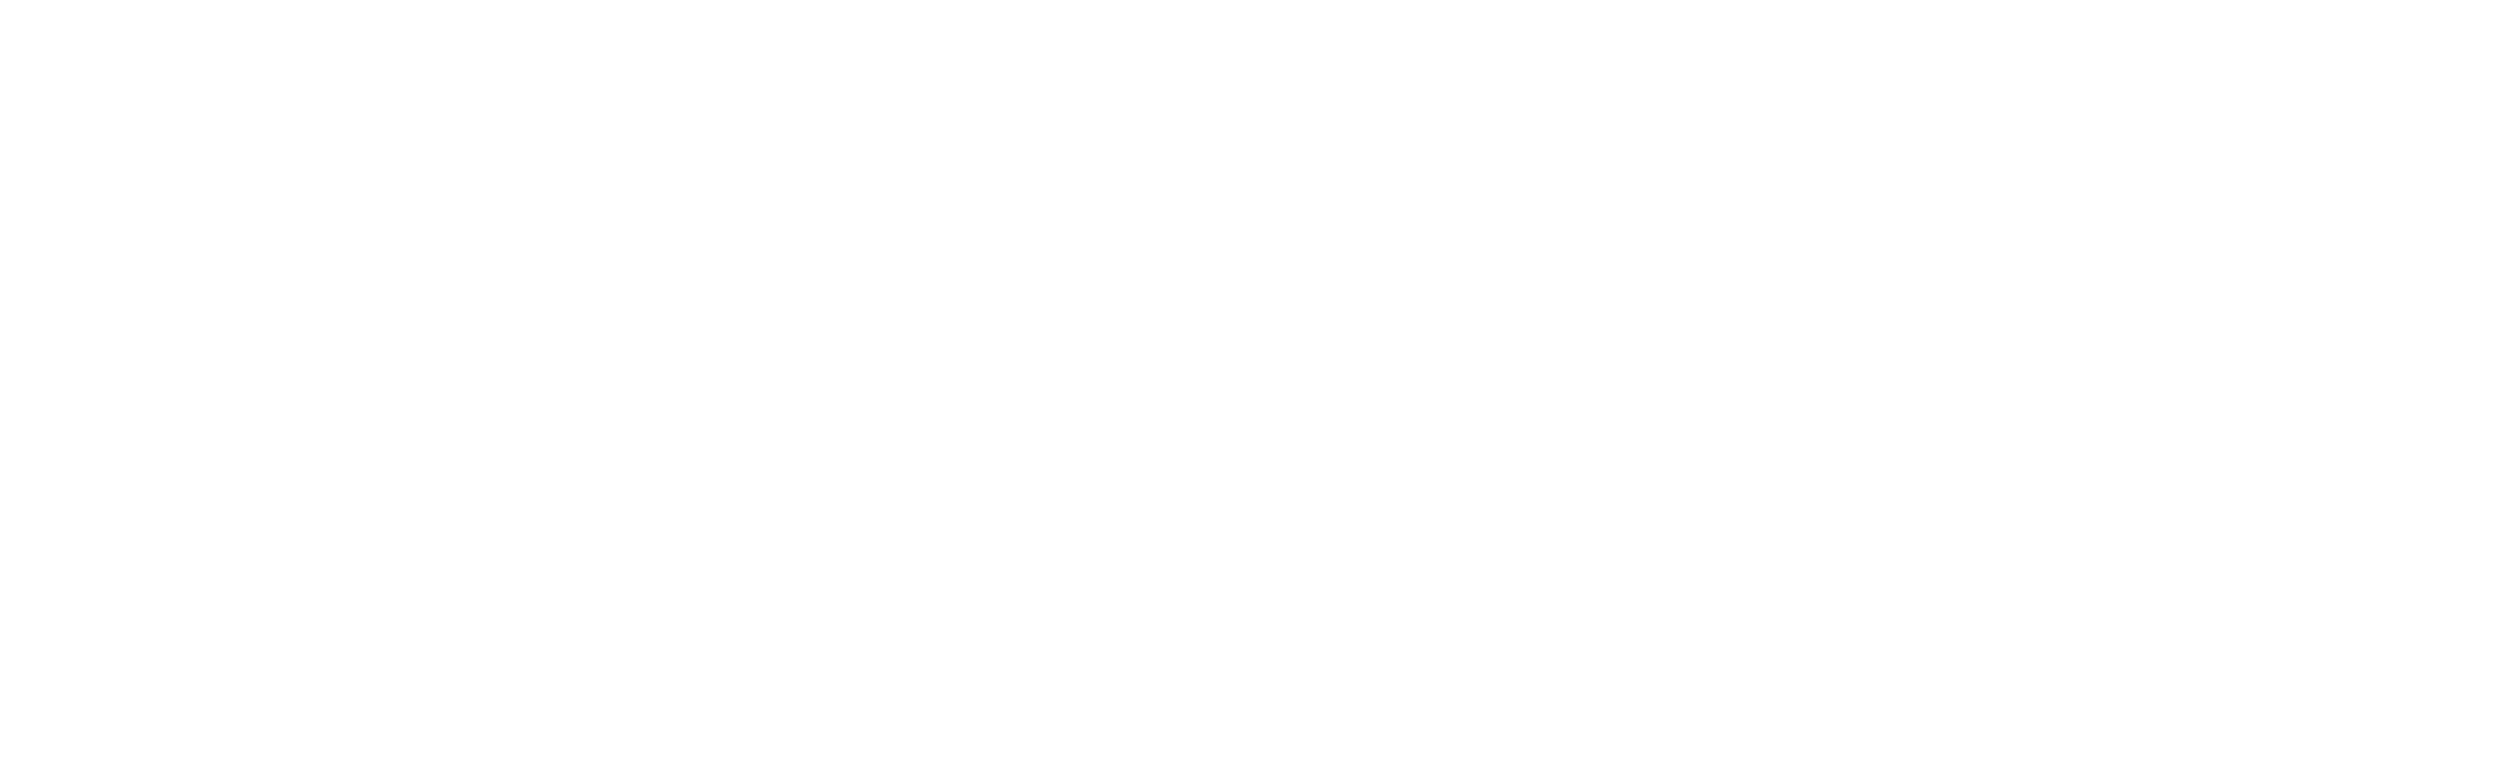 Because the body is more than vital matter. It's vital energy as well.